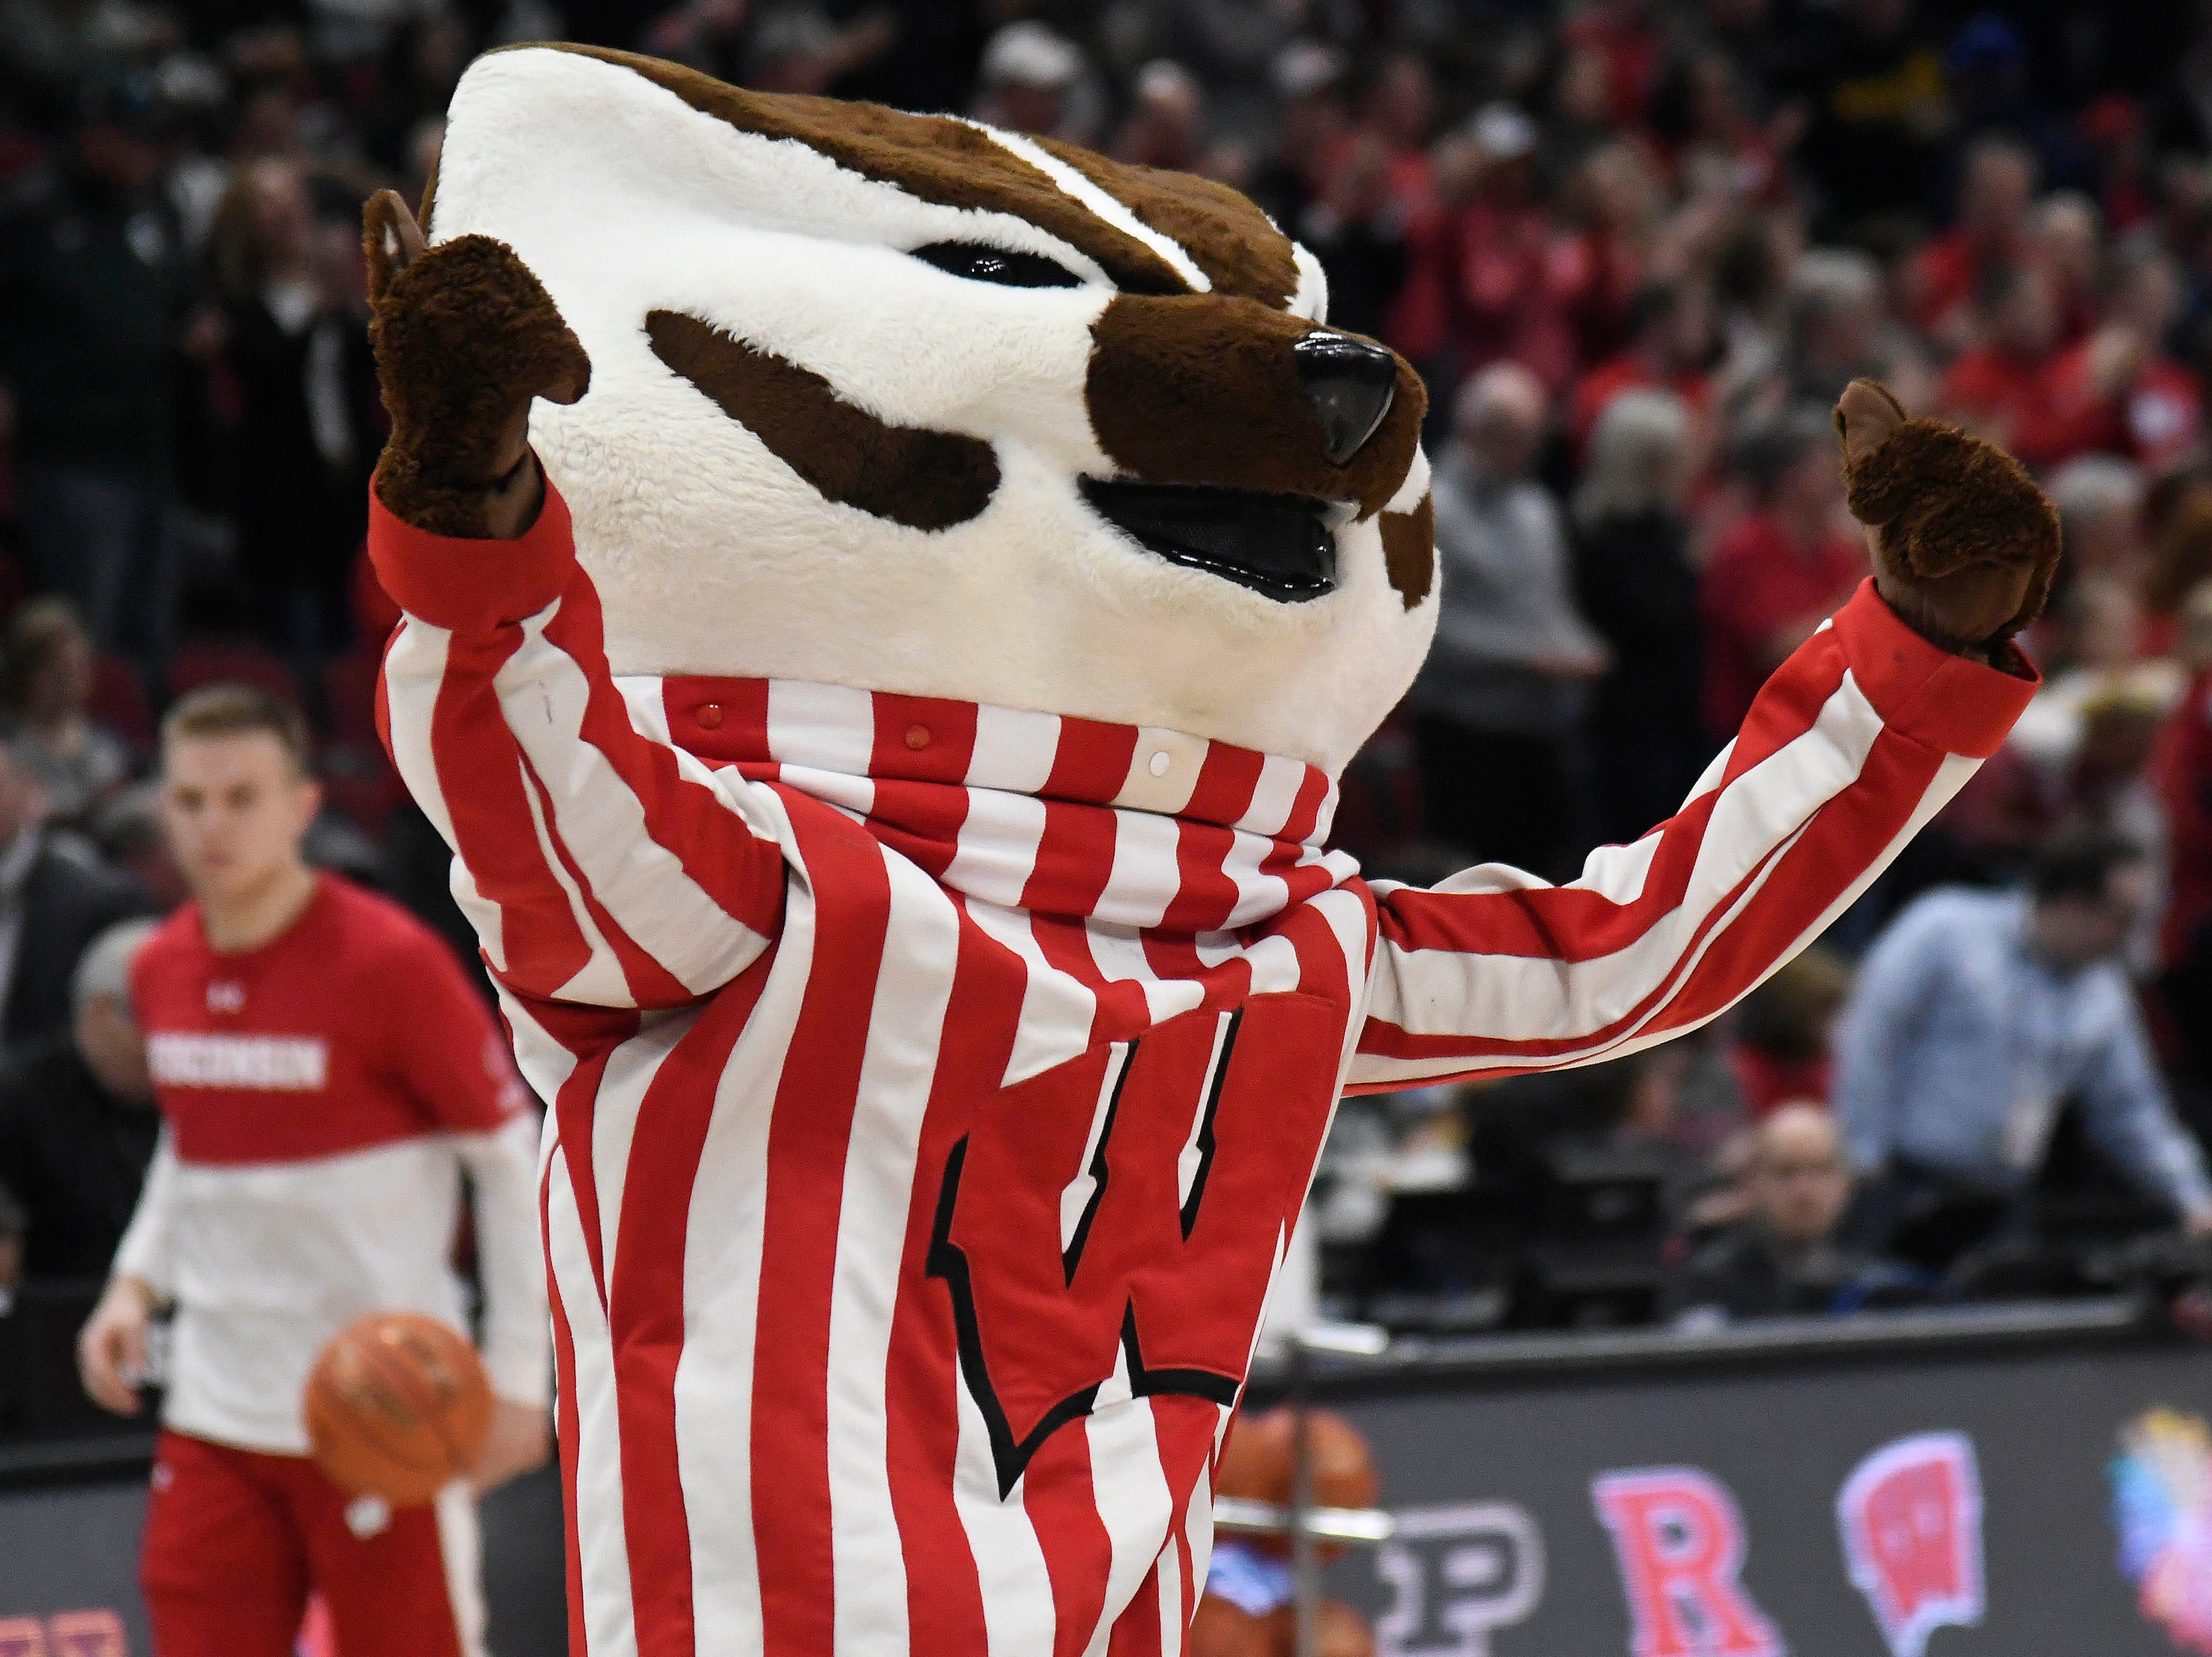 """Wisconsin Badgers mascot """"Bucky Badger"""" performs during the first half in the Big Ten conference tournament at United Center."""